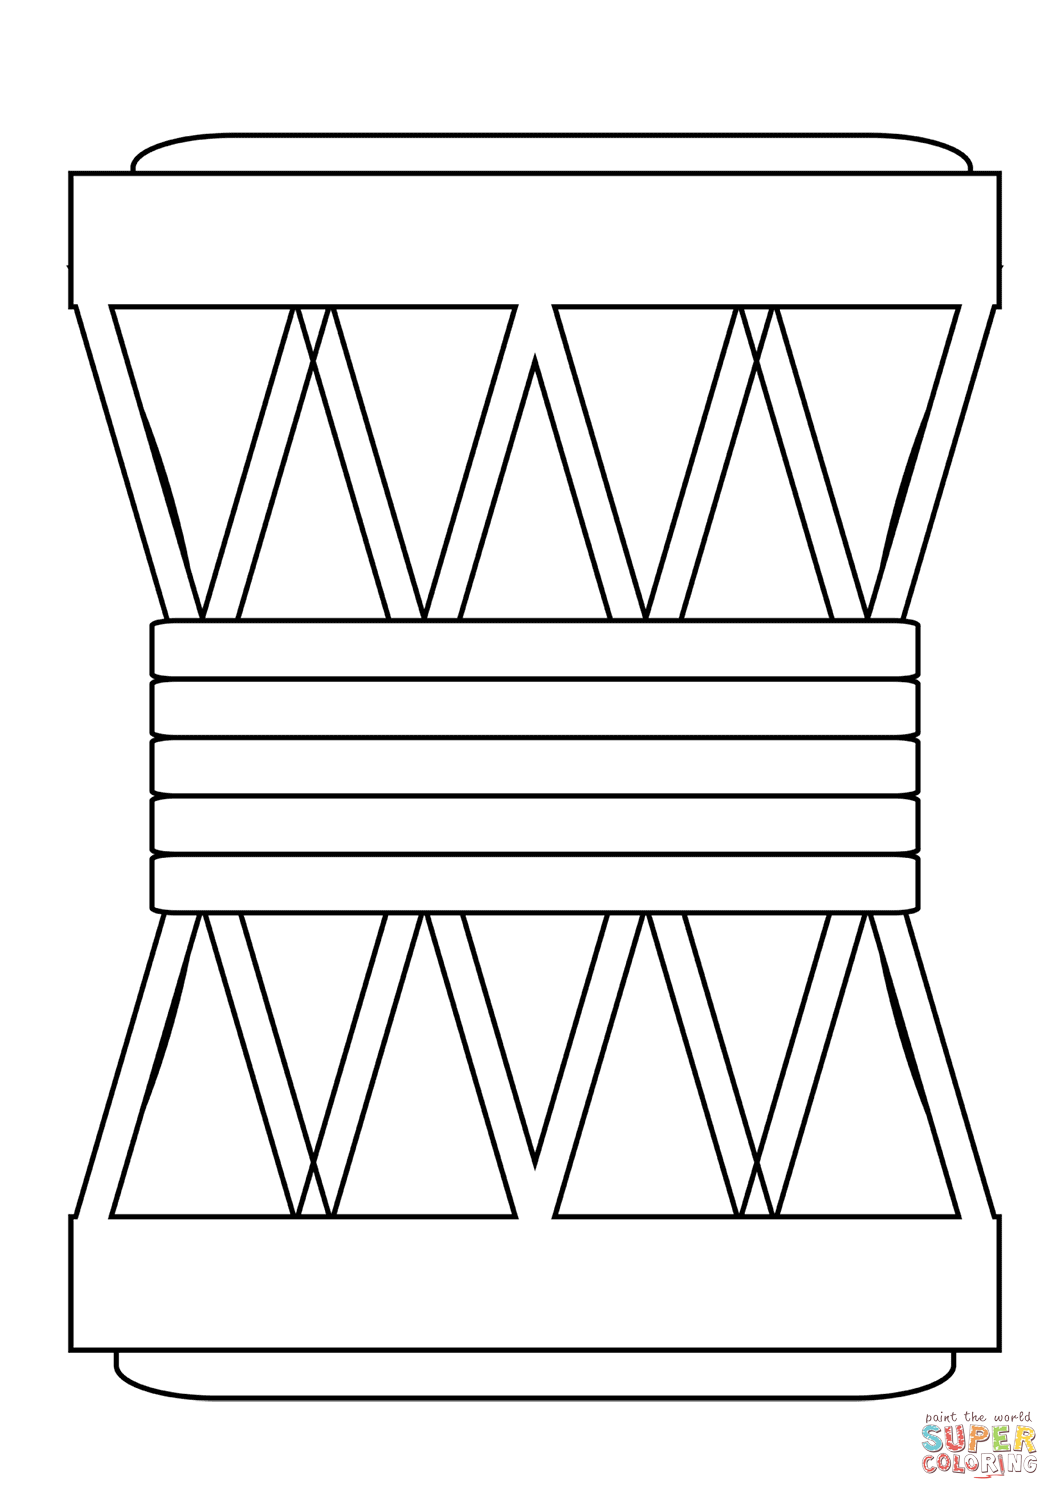 african drum coloring page africa make mini drum music edmulticultural drums page coloring african drum